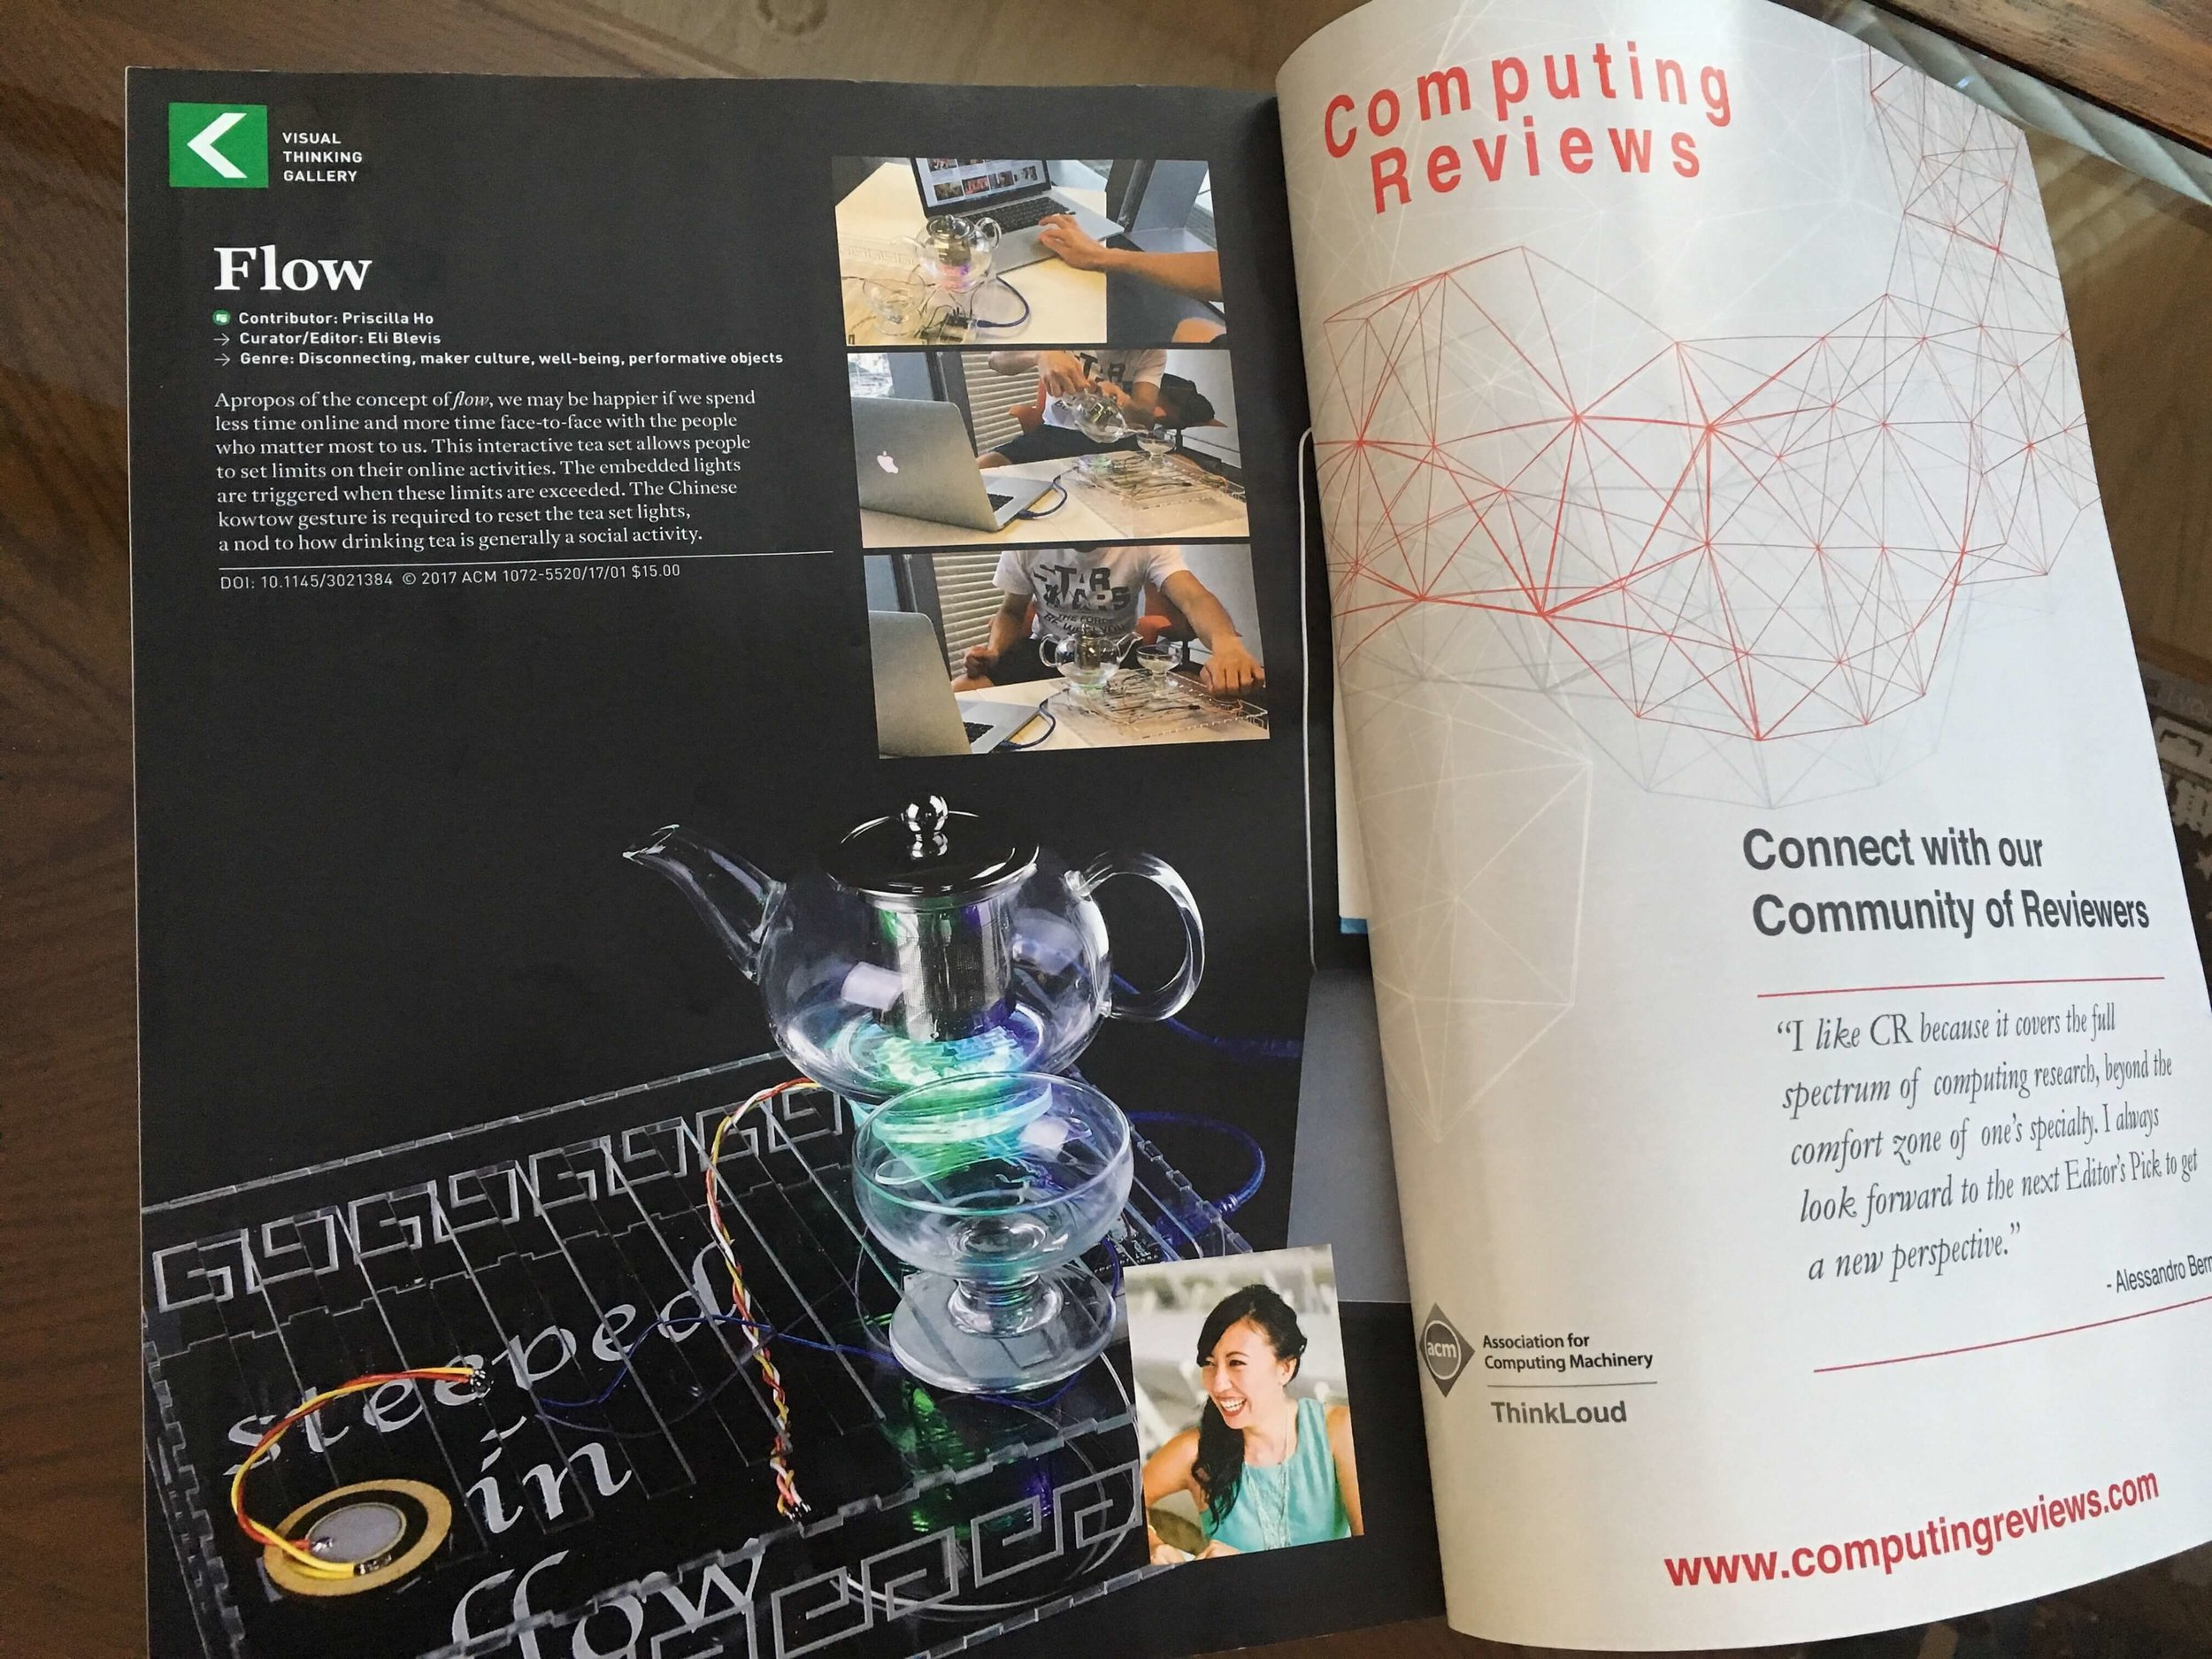 Featured in Visual Thinking Gallery in ACM Interactions Magazine (Jan-Feb 2017)